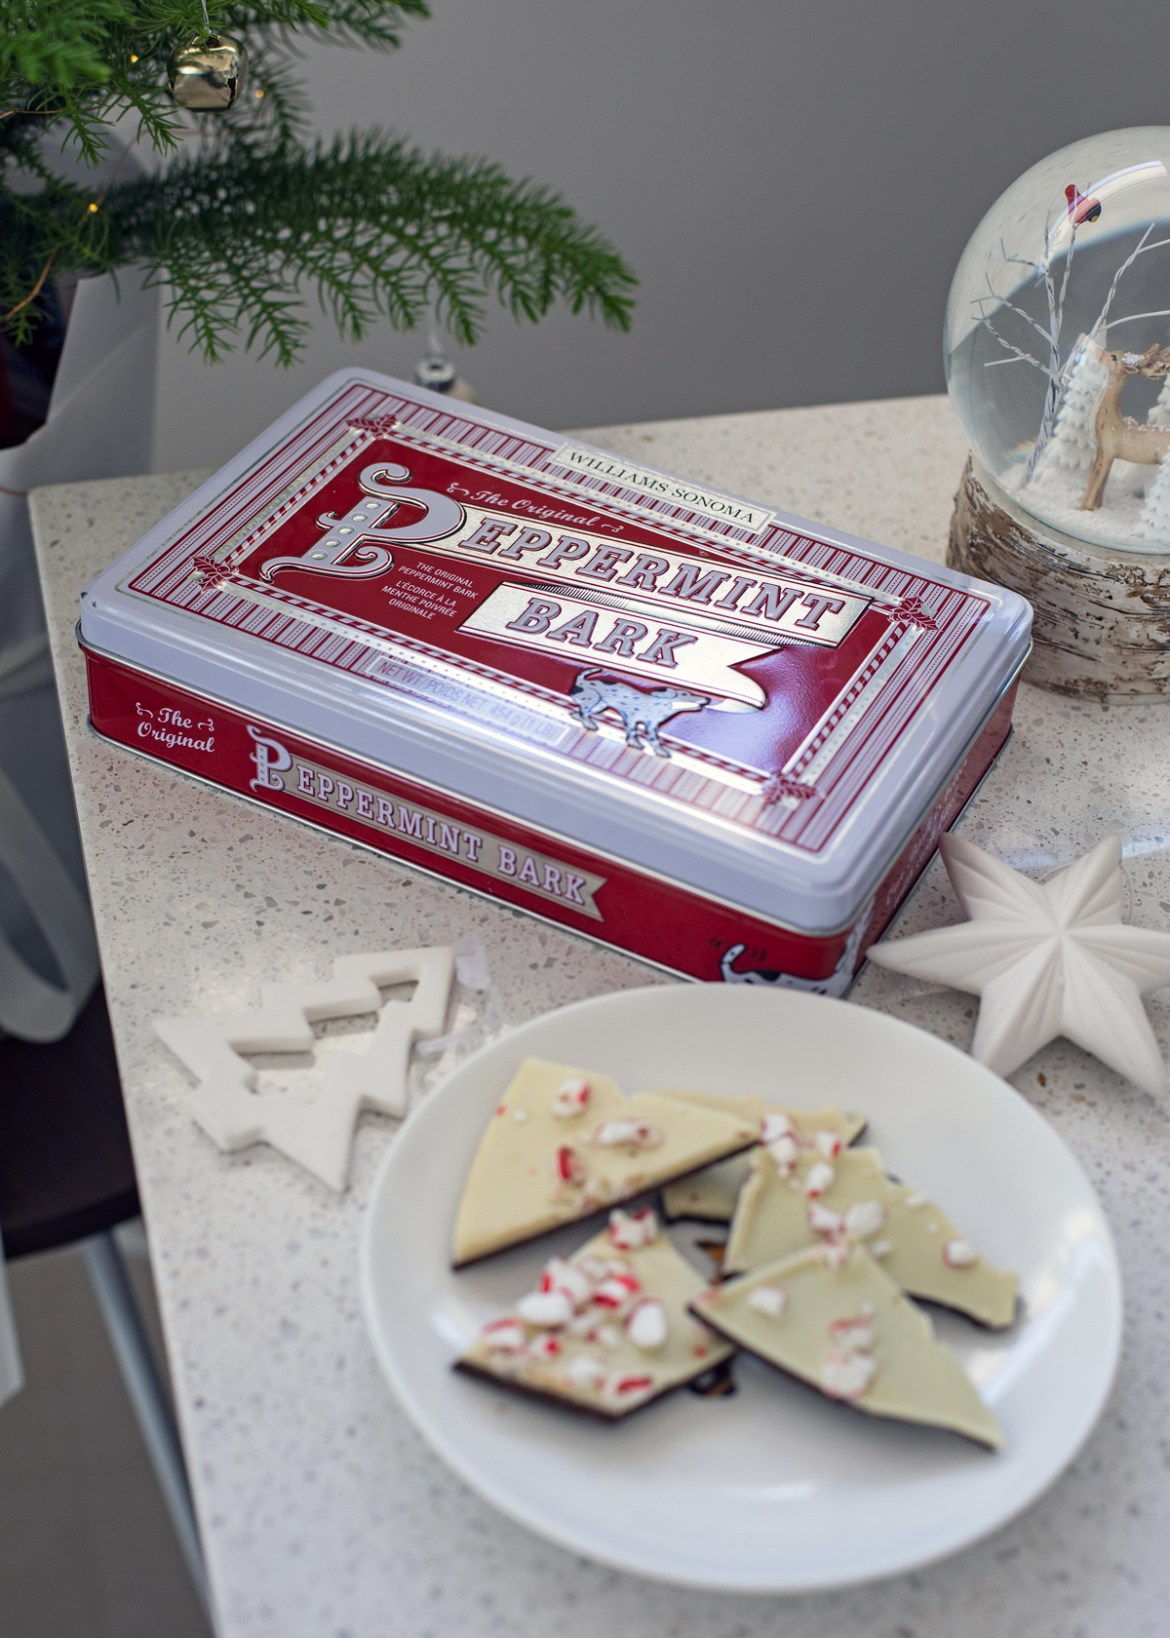 Williams Sonoma Peppermint Bark tin for a last minute Christmas gift idea